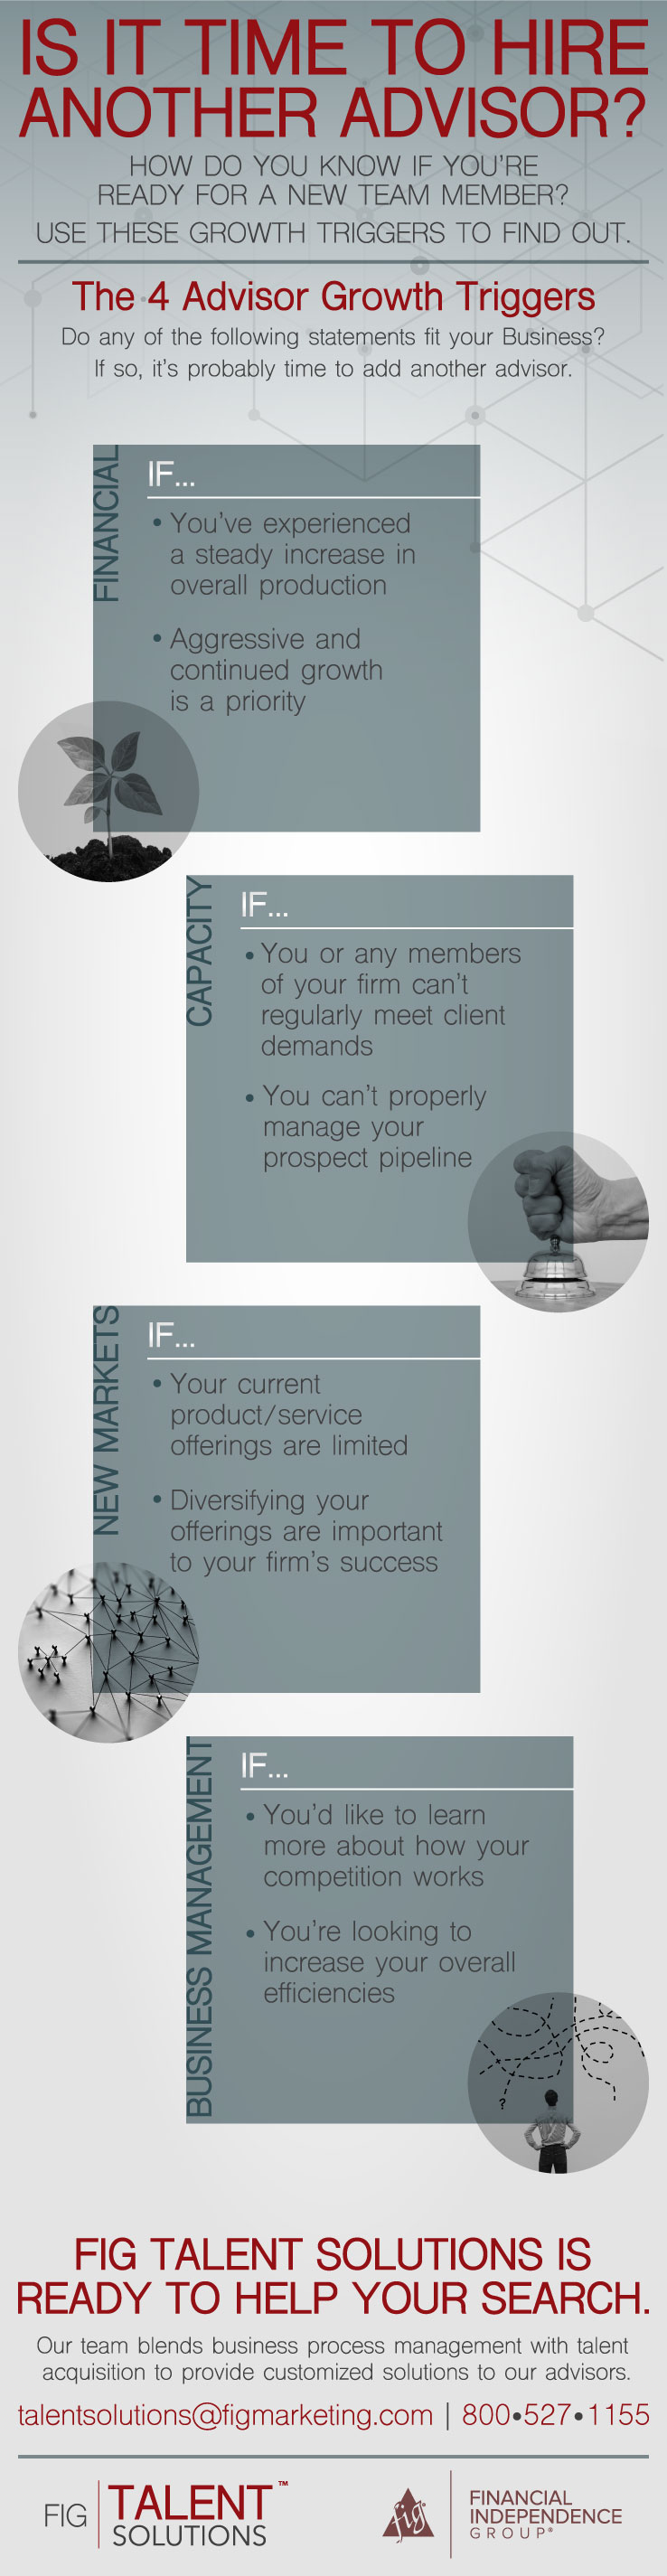 infographic: is it time to hire another advisor?